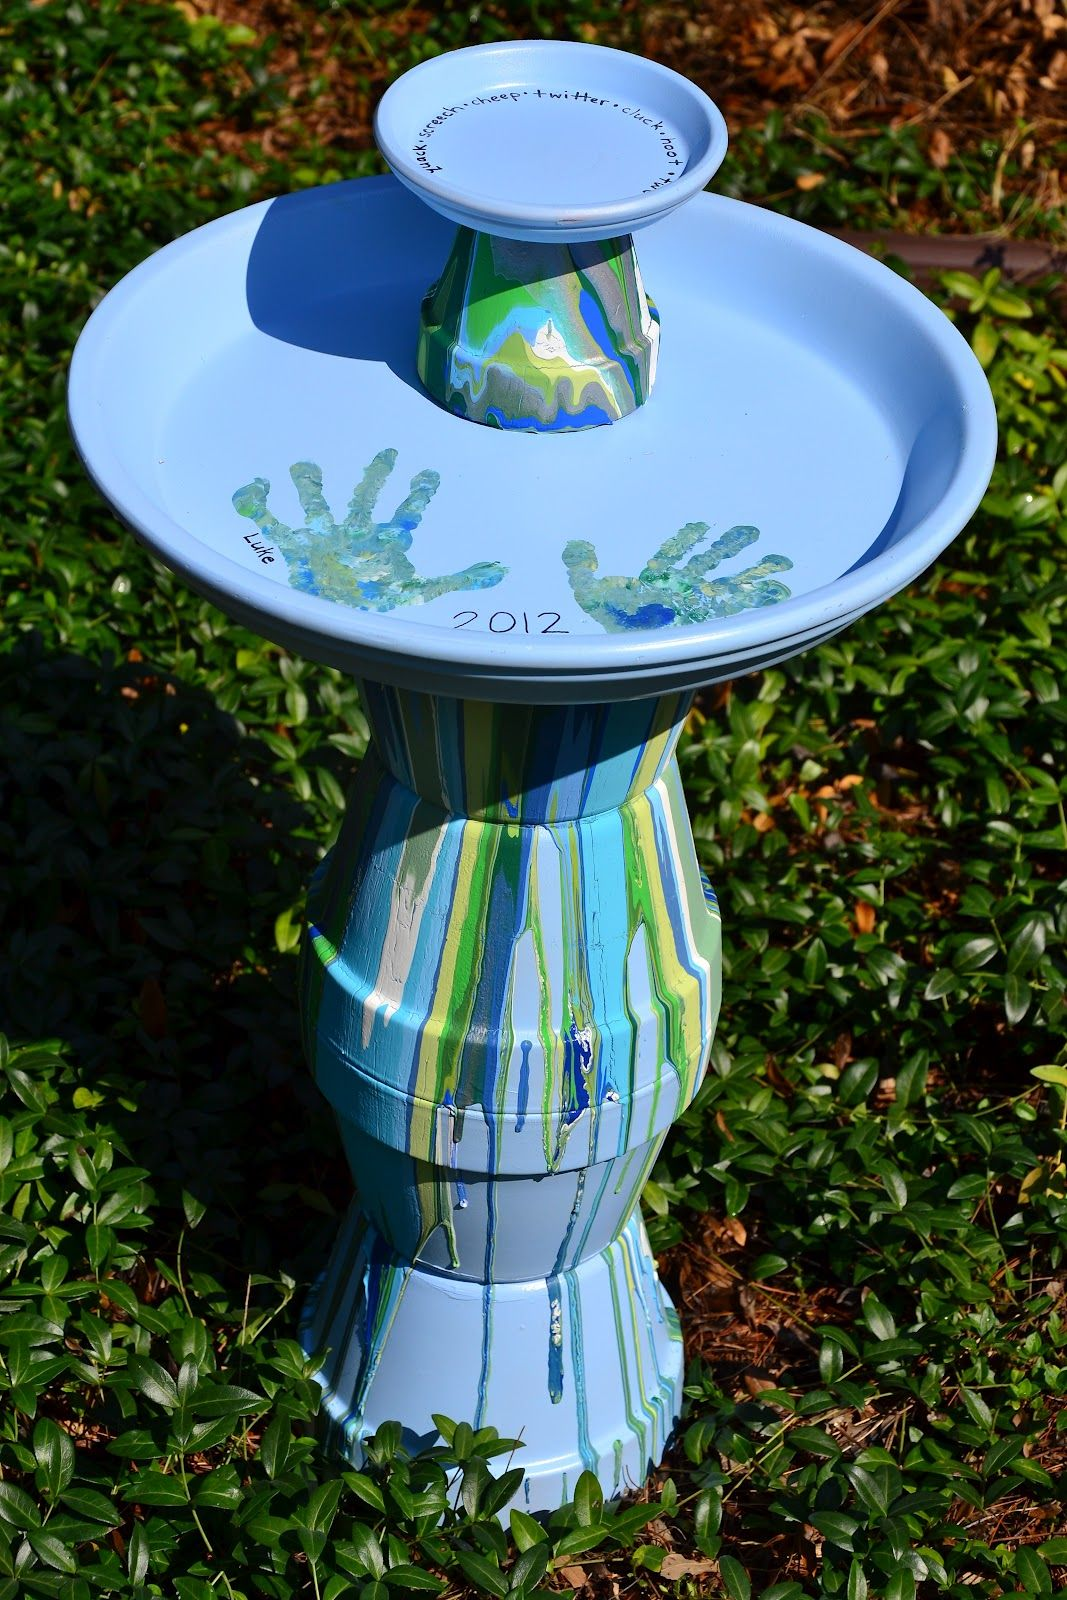 The Best Diy Spring Project Easter Craft Ideas Kitchen Fun With My 3 Sons Diy Bird Bath Bird Bath Diy Birds